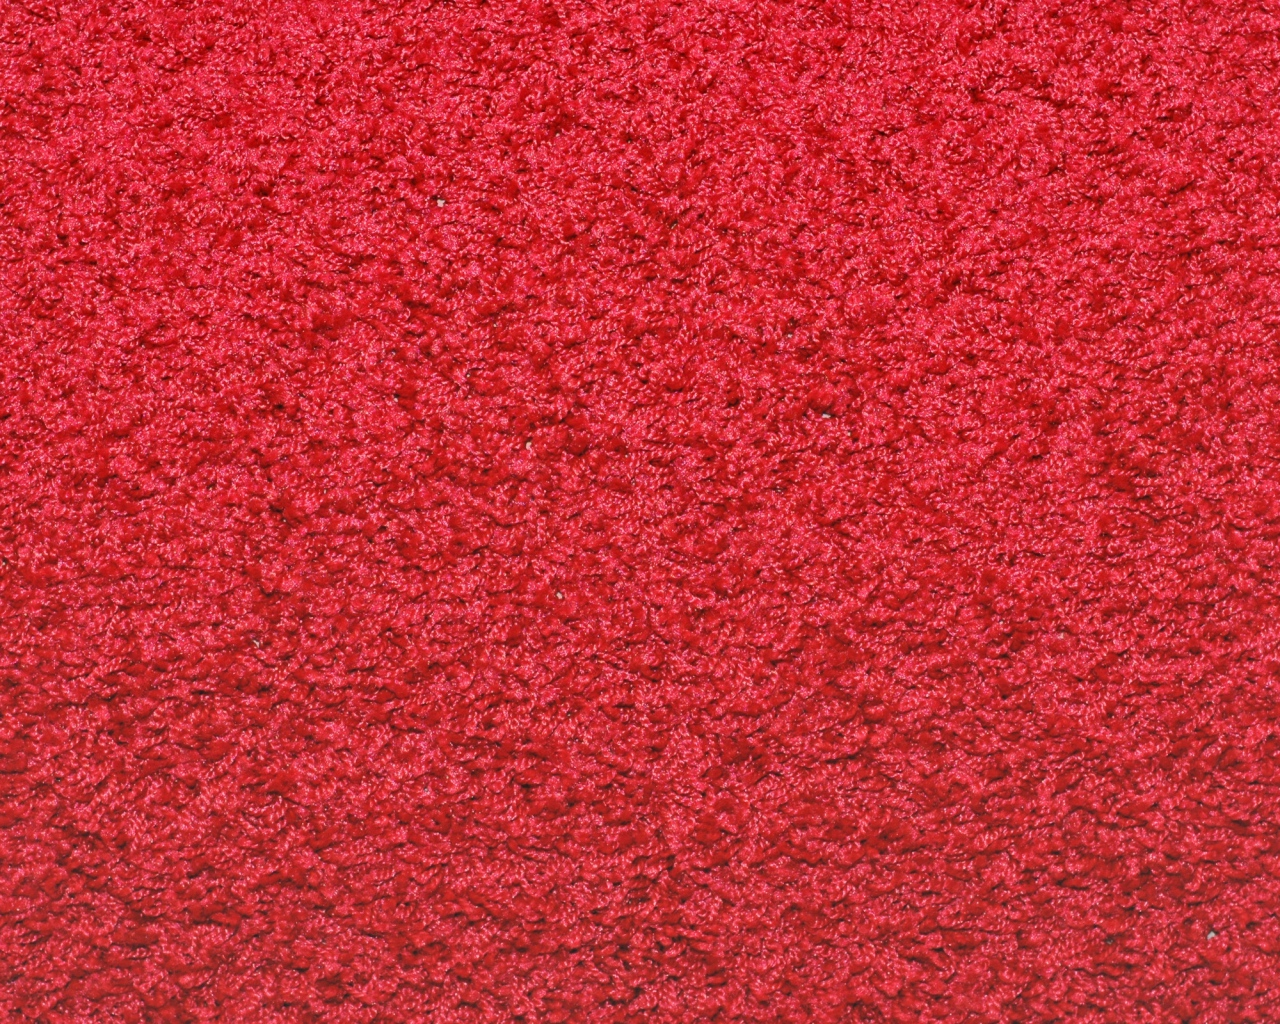 Bright Red Carpet Background Wallpaper Background 1280x1024 1280x1024